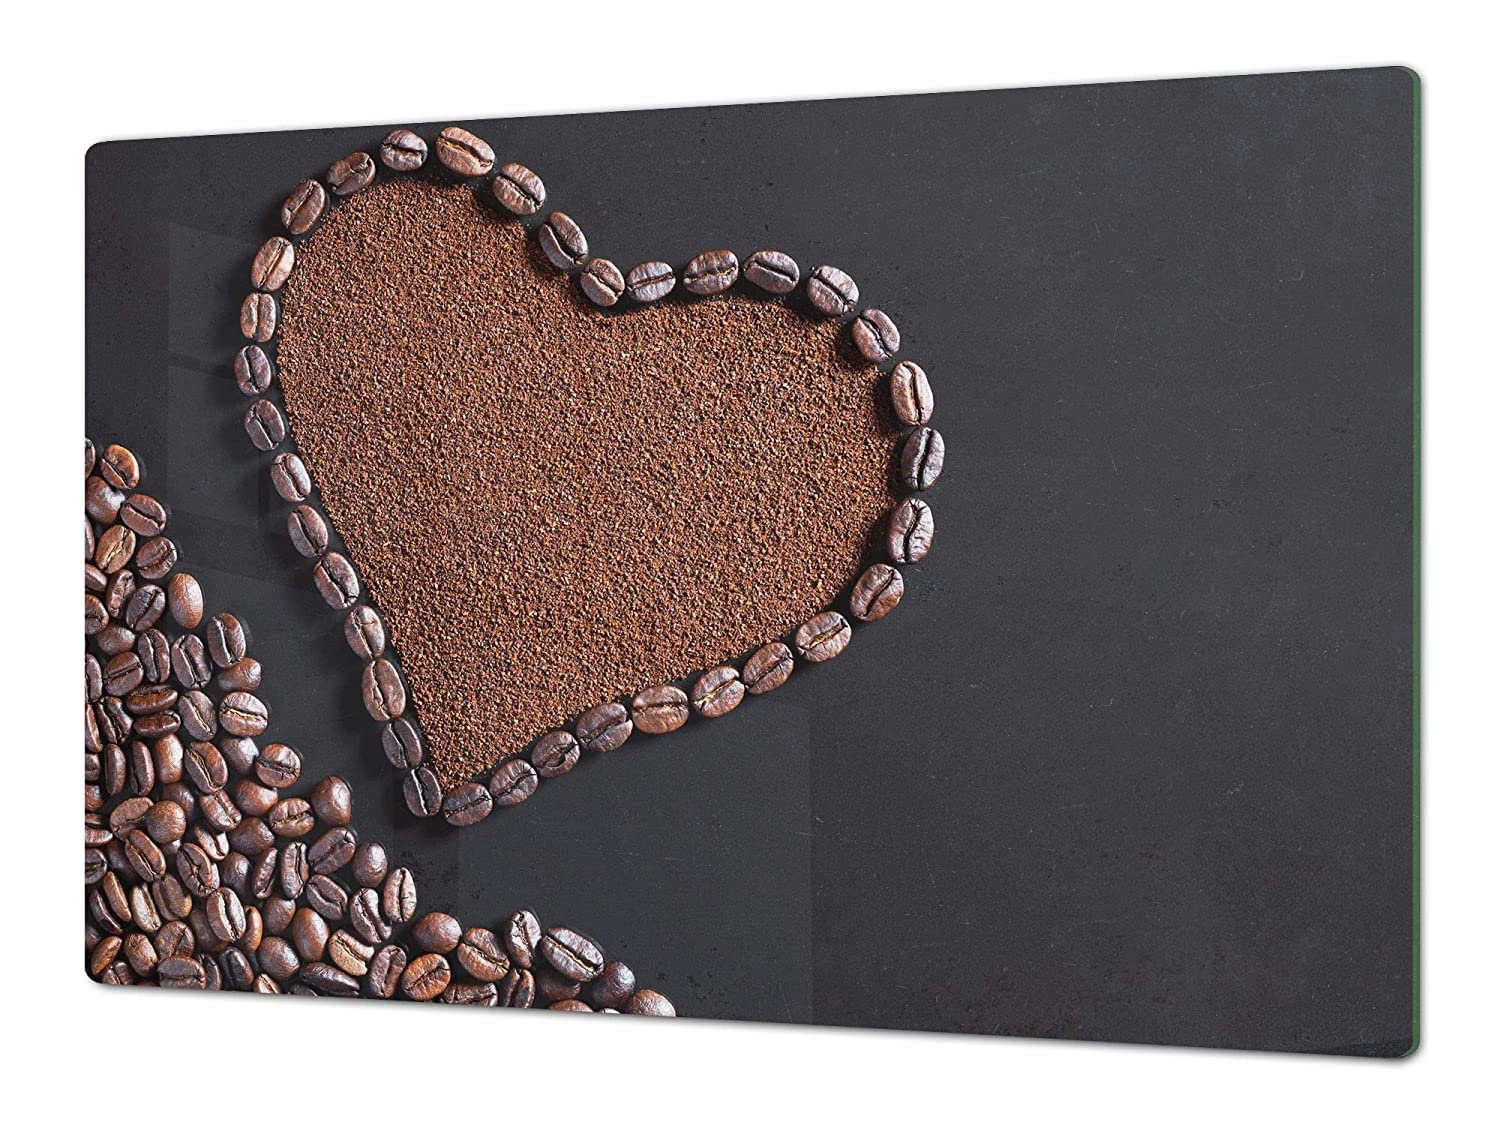 Heart from coffee 80x52 HUGE Cutting Board – Worktop saver and Pastry Board – Scratch & Shatter Resistant Glass Kitchen Board; MEASURES  SINGLE  80 x 52 cm (31,5  x 20,47 ); DOUBLE  40 x 52 cm (15,75  x 20,47 ); Coffee series DD07